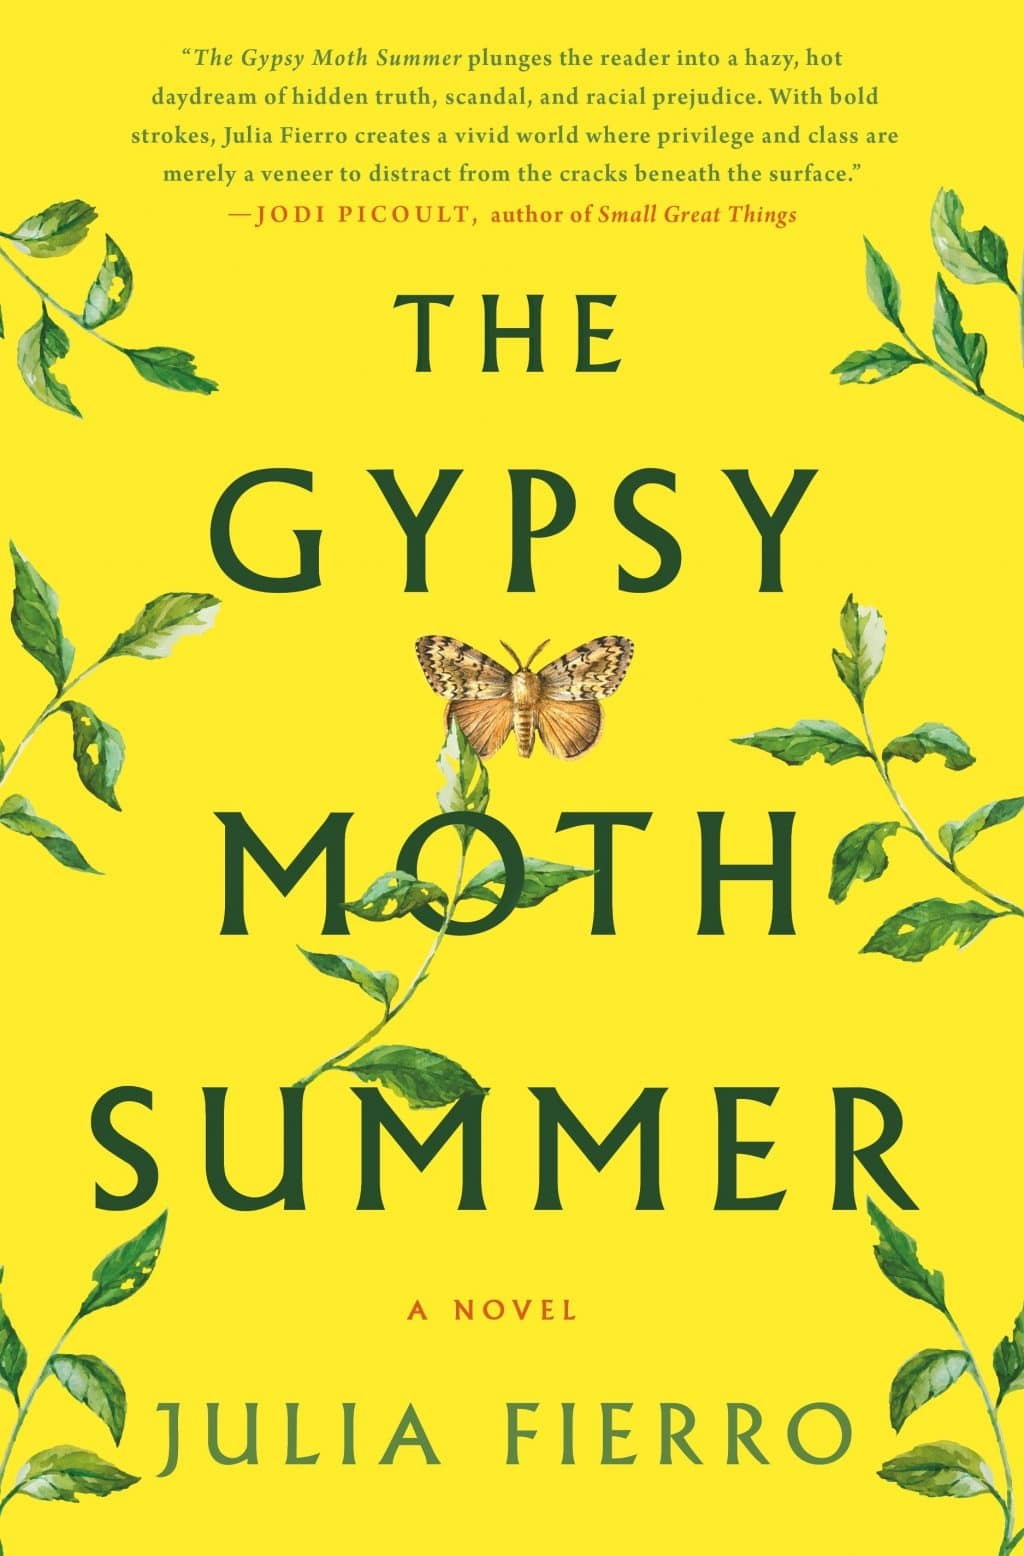 Gypsy Moth Summer_cover image FINAL